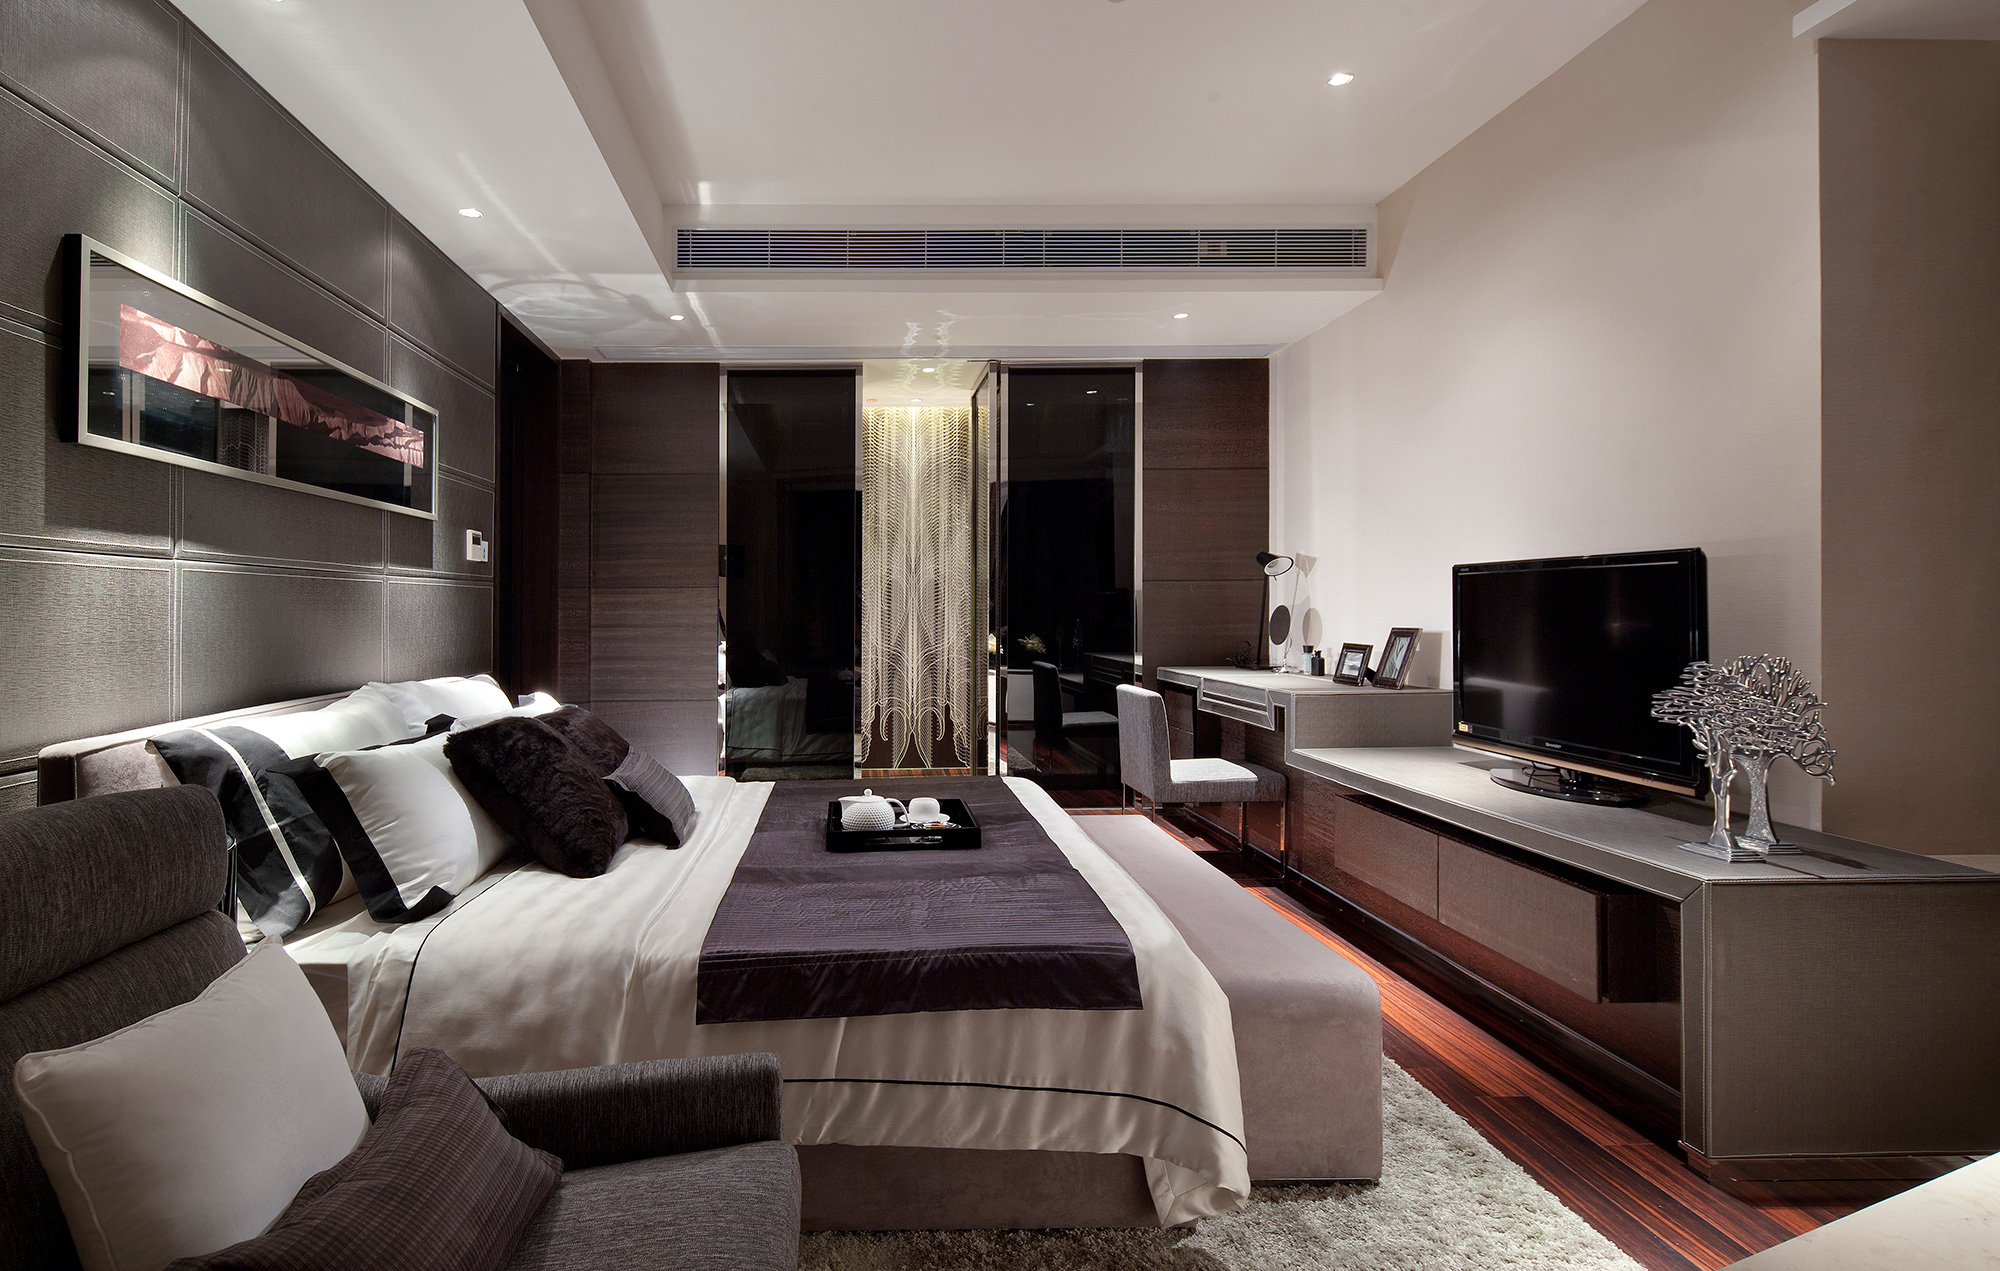 Synergistic modern spaces by steve leung for Luxury bedroom inspiration